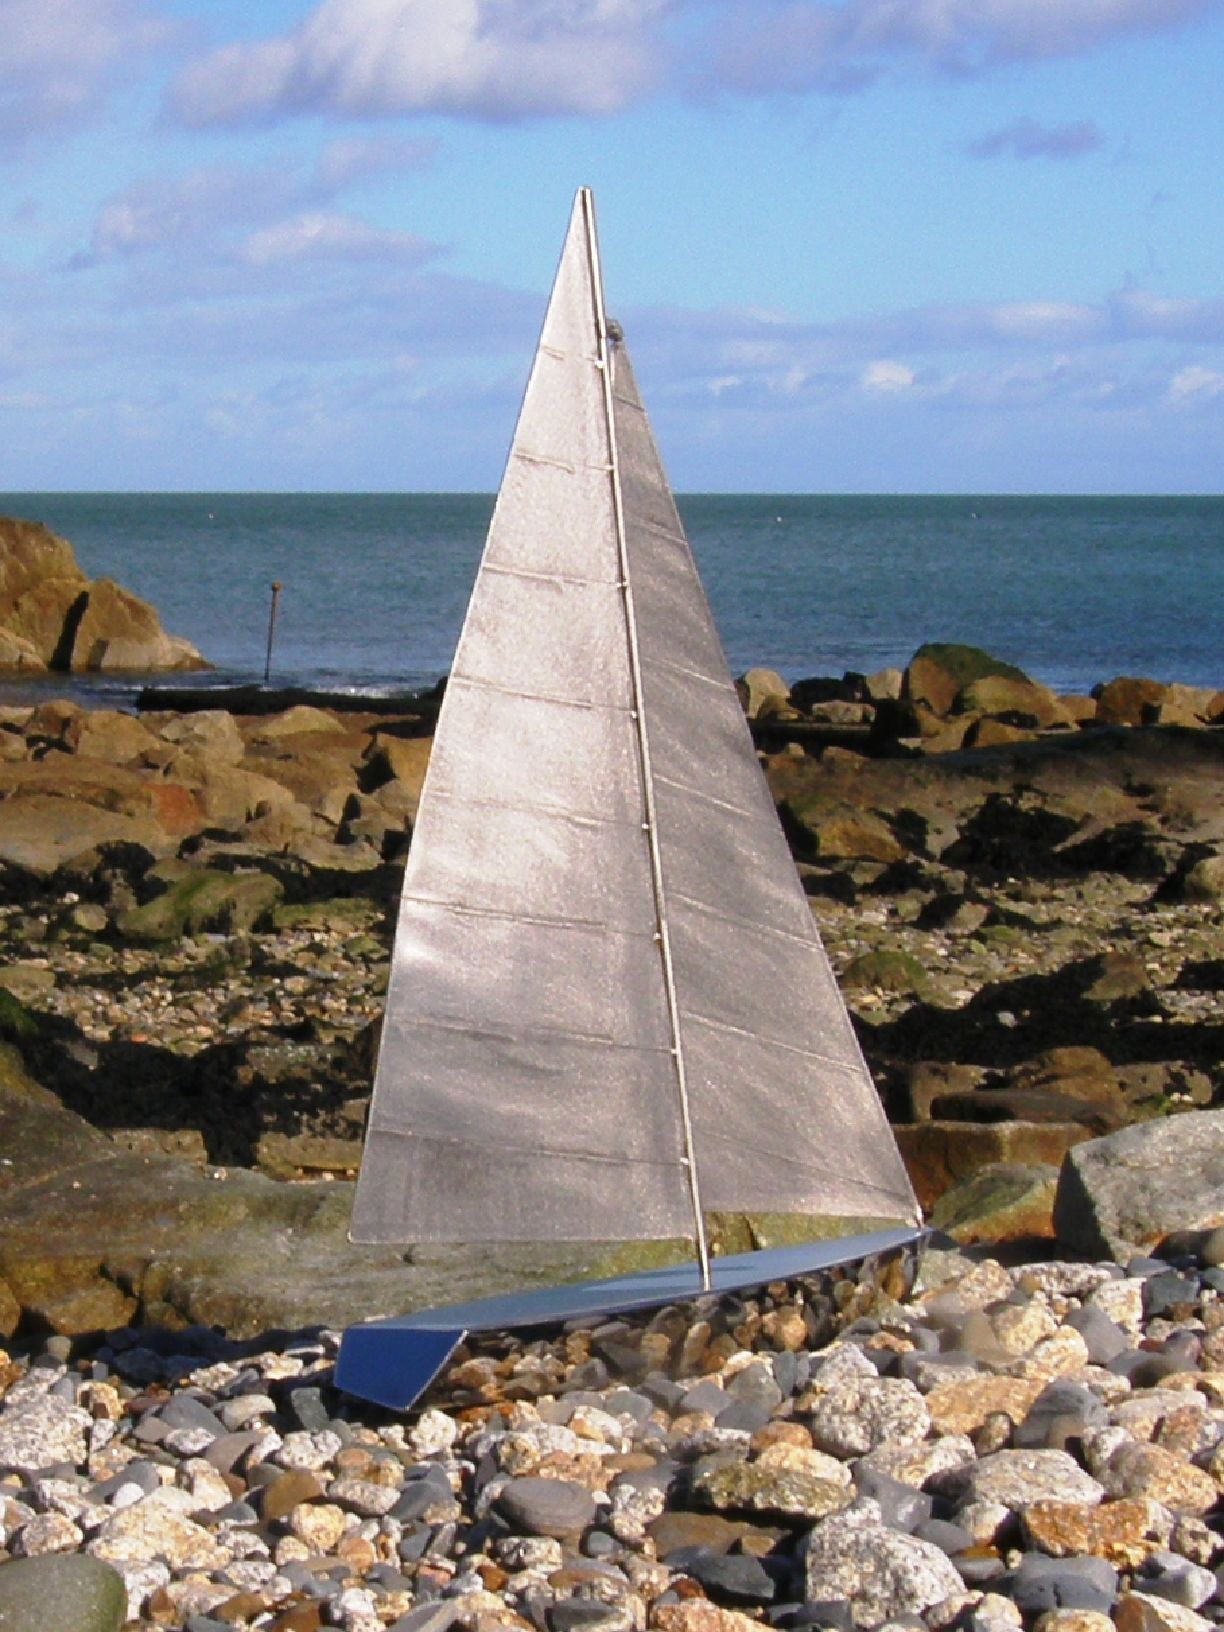 Stainless Steel Yacht Model on Starboard Tack - Handmade in Stainless Steel